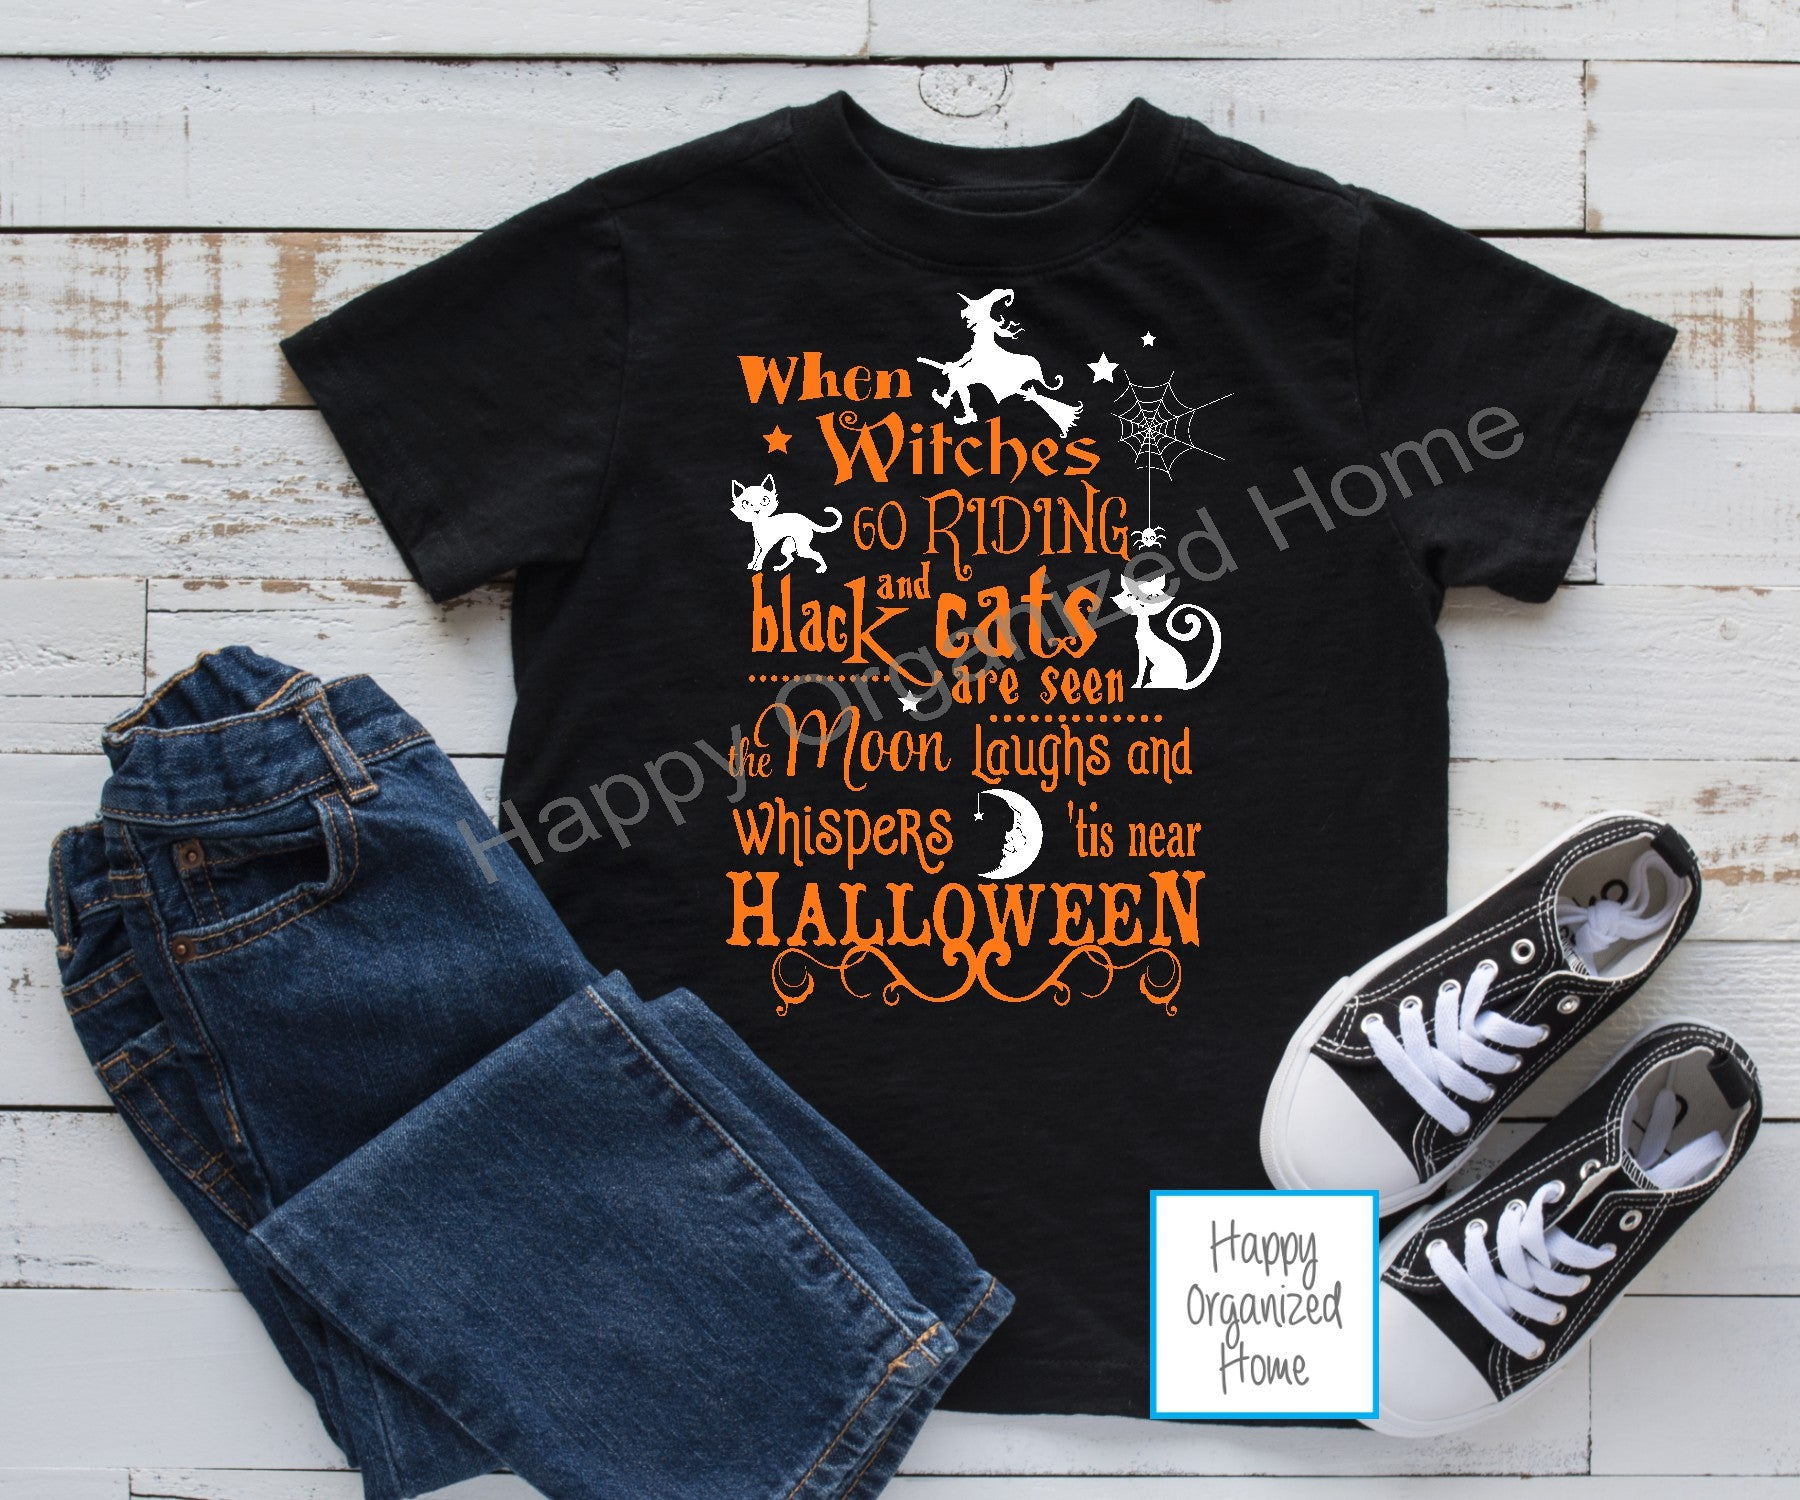 When Witches go riding - Kids tshirt